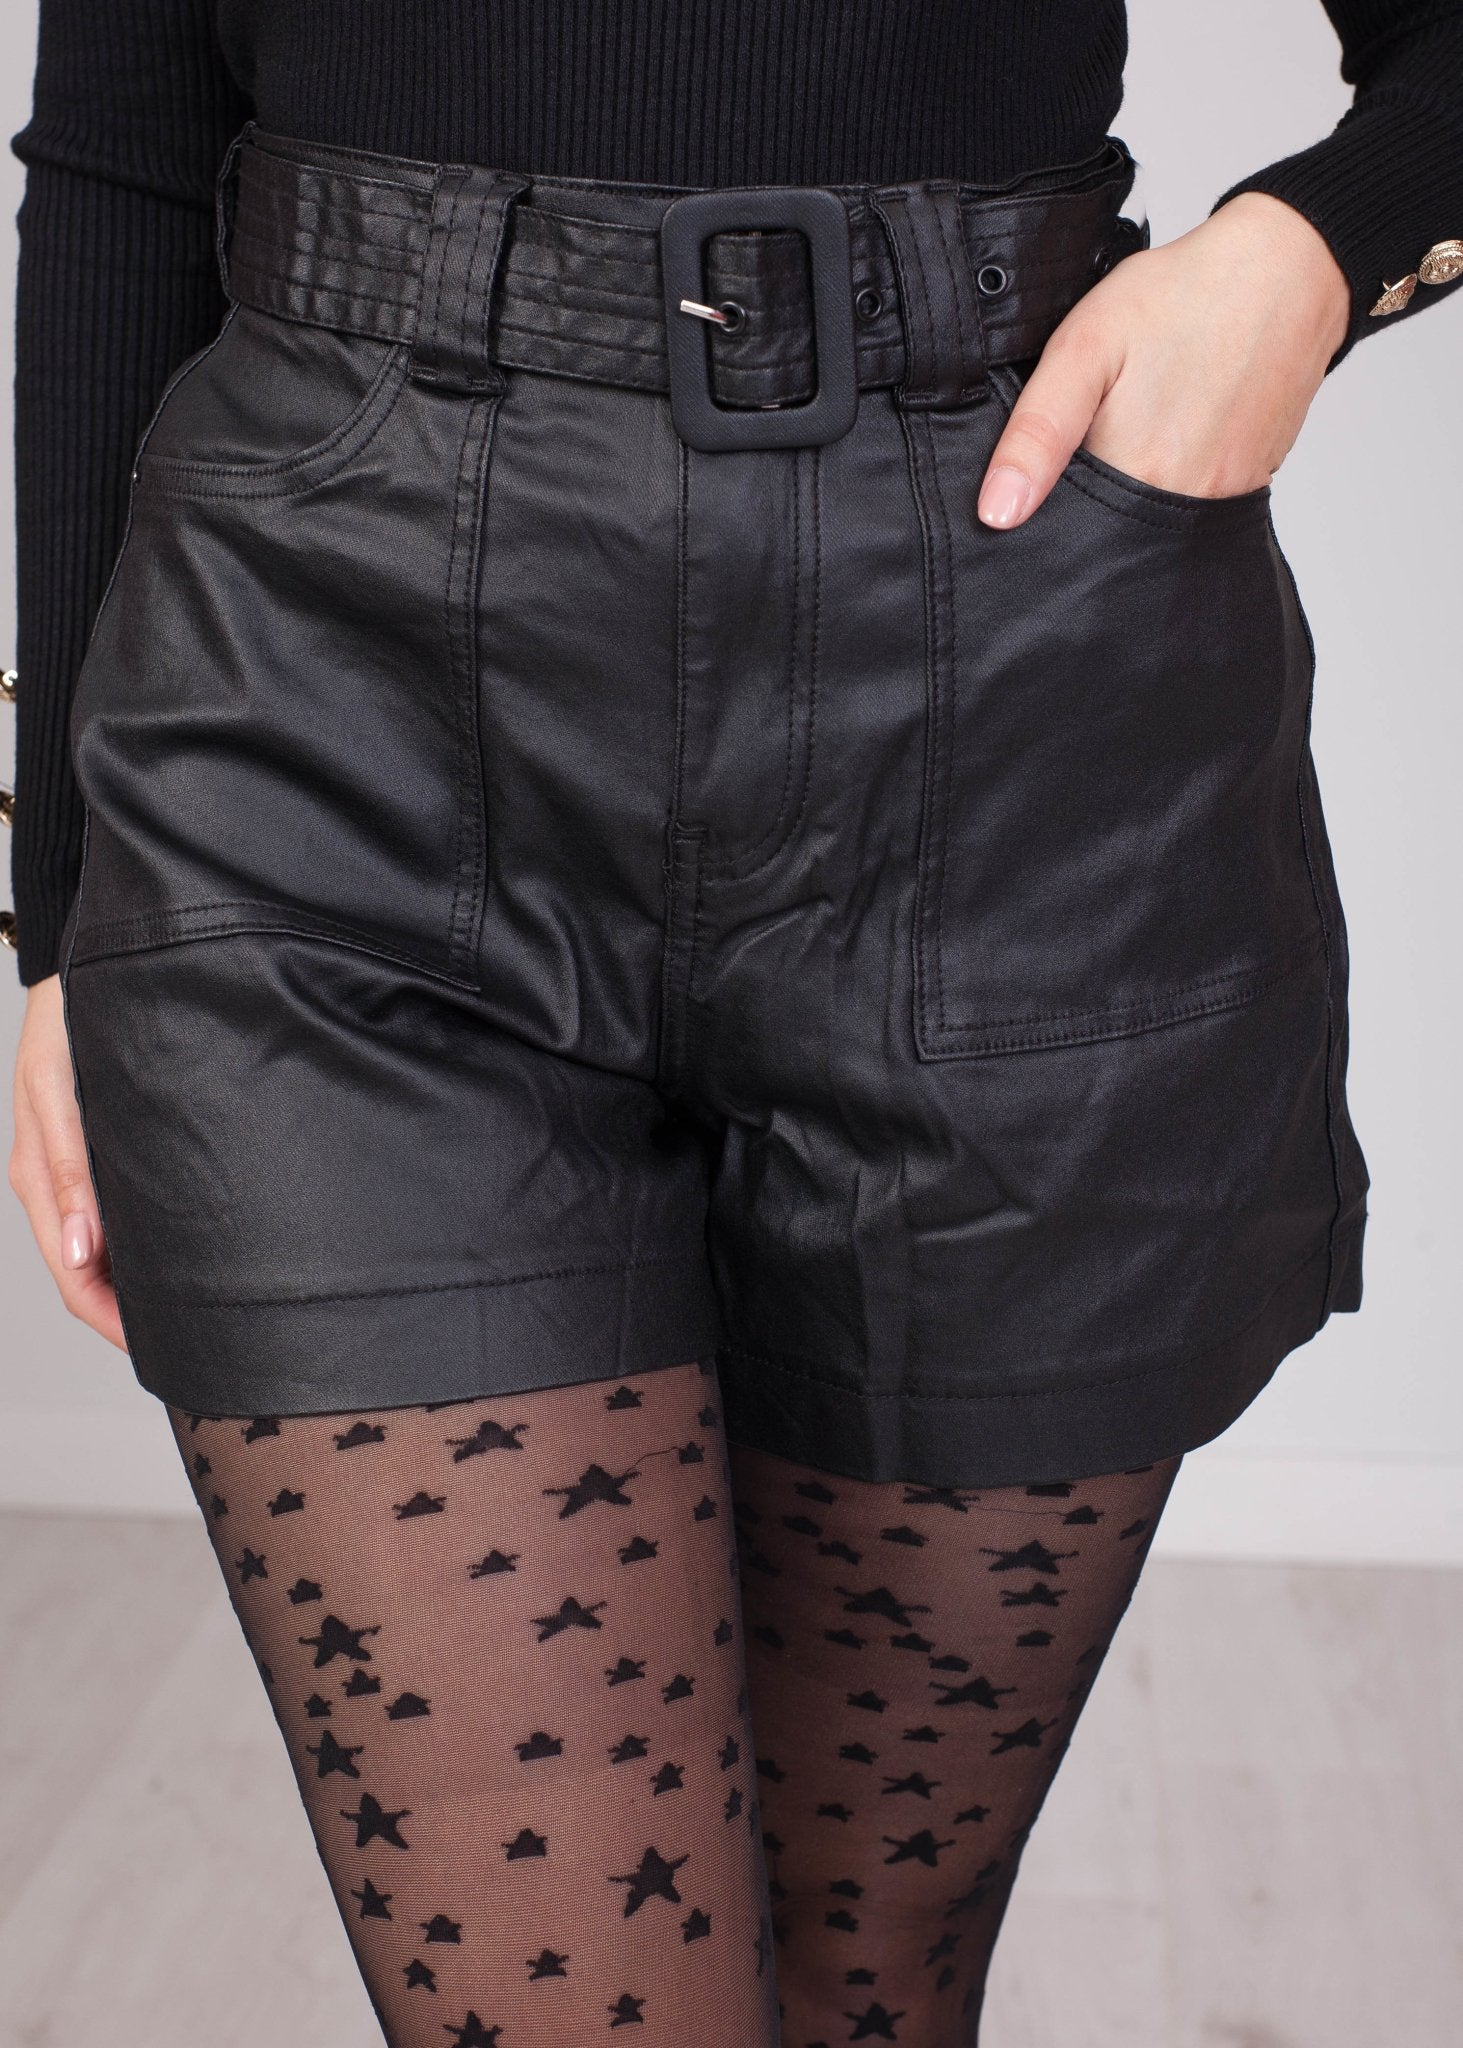 Jane Black Leather Shorts - The Walk in Wardrobe